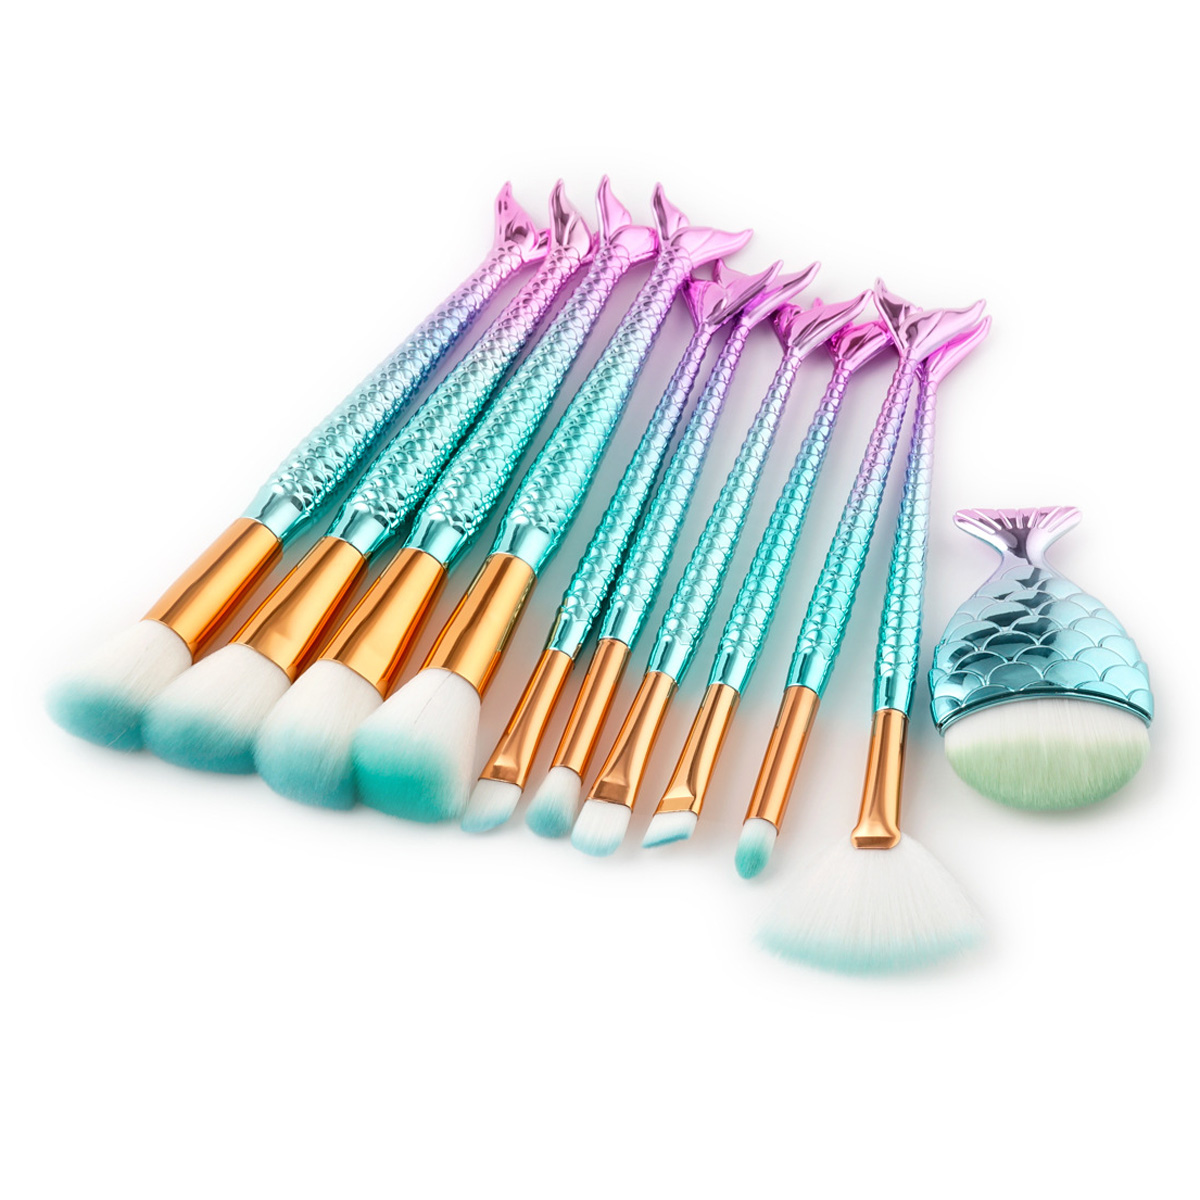 11Pc Mermaid Makeup Brush Set Eyebrow Eyeliner Blush Blending Contour Foundation Cosmetic Beauty Gradient Color Make Up Brushes newest mermaid makeup brushes set fantasy eyebrow eyeliner blush blending contour foundation cosmetic beauty make up fish brus